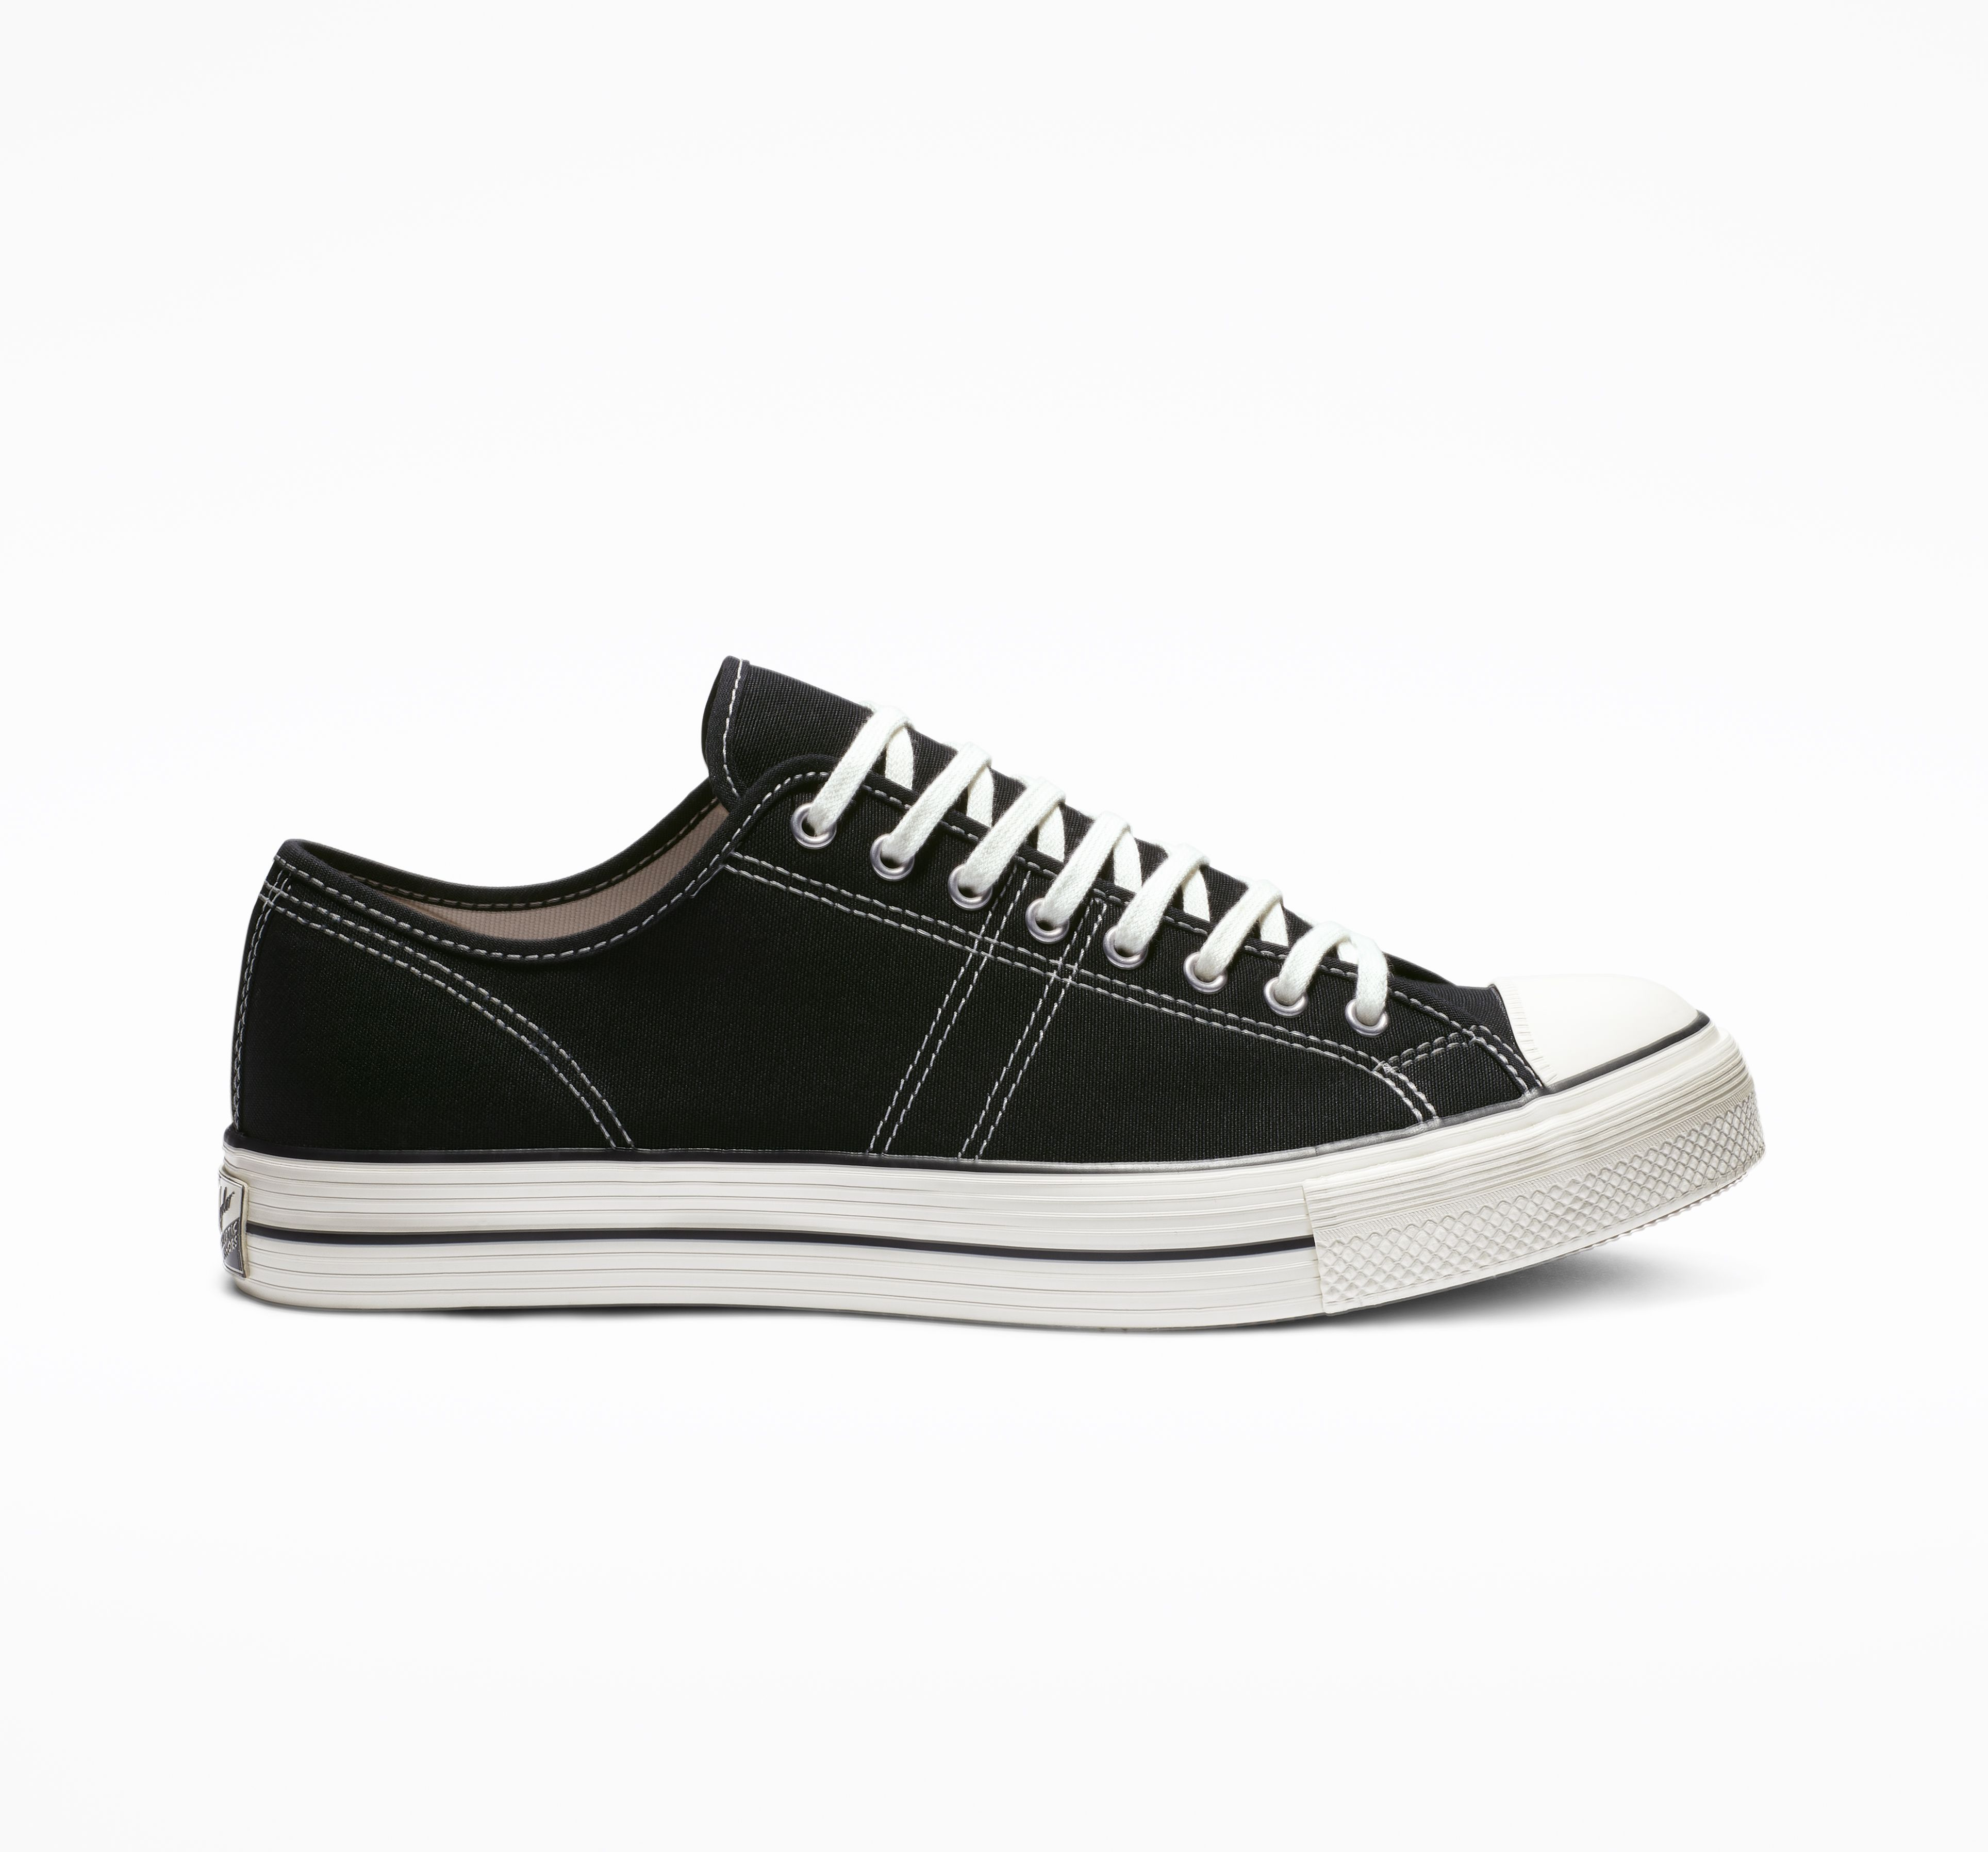 official photos 459b8 6a352 Lucky Star Low Top in 2019   Products   Lucky star, Converse ...